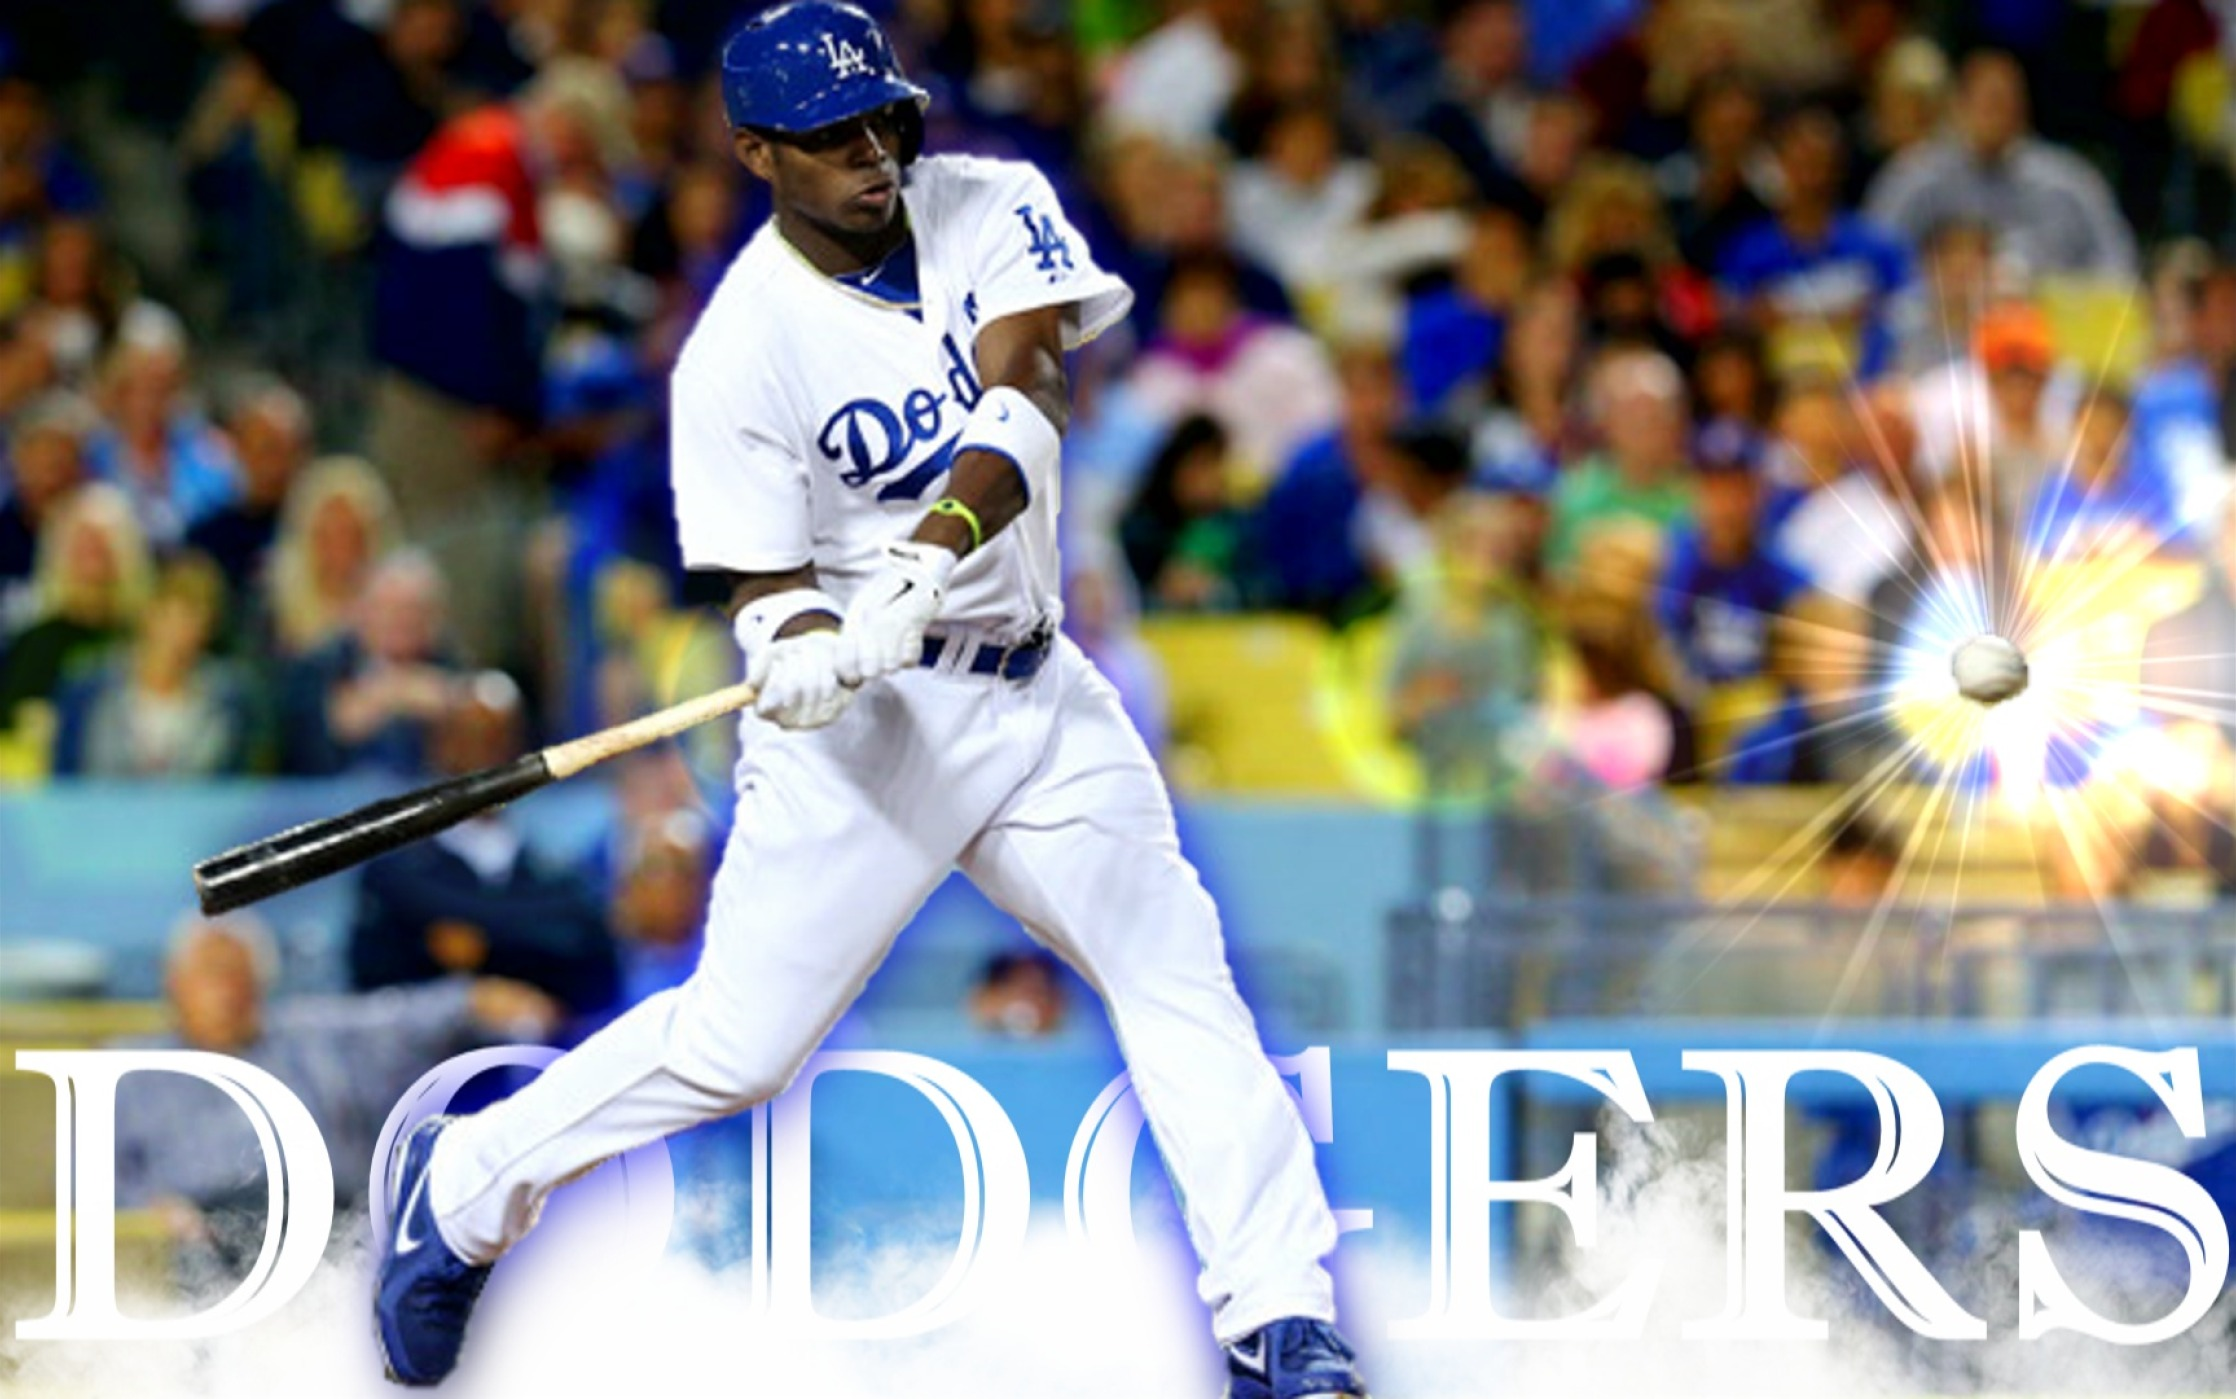 YASIEL_PUIG_LAPROJECTIONS_COVERART